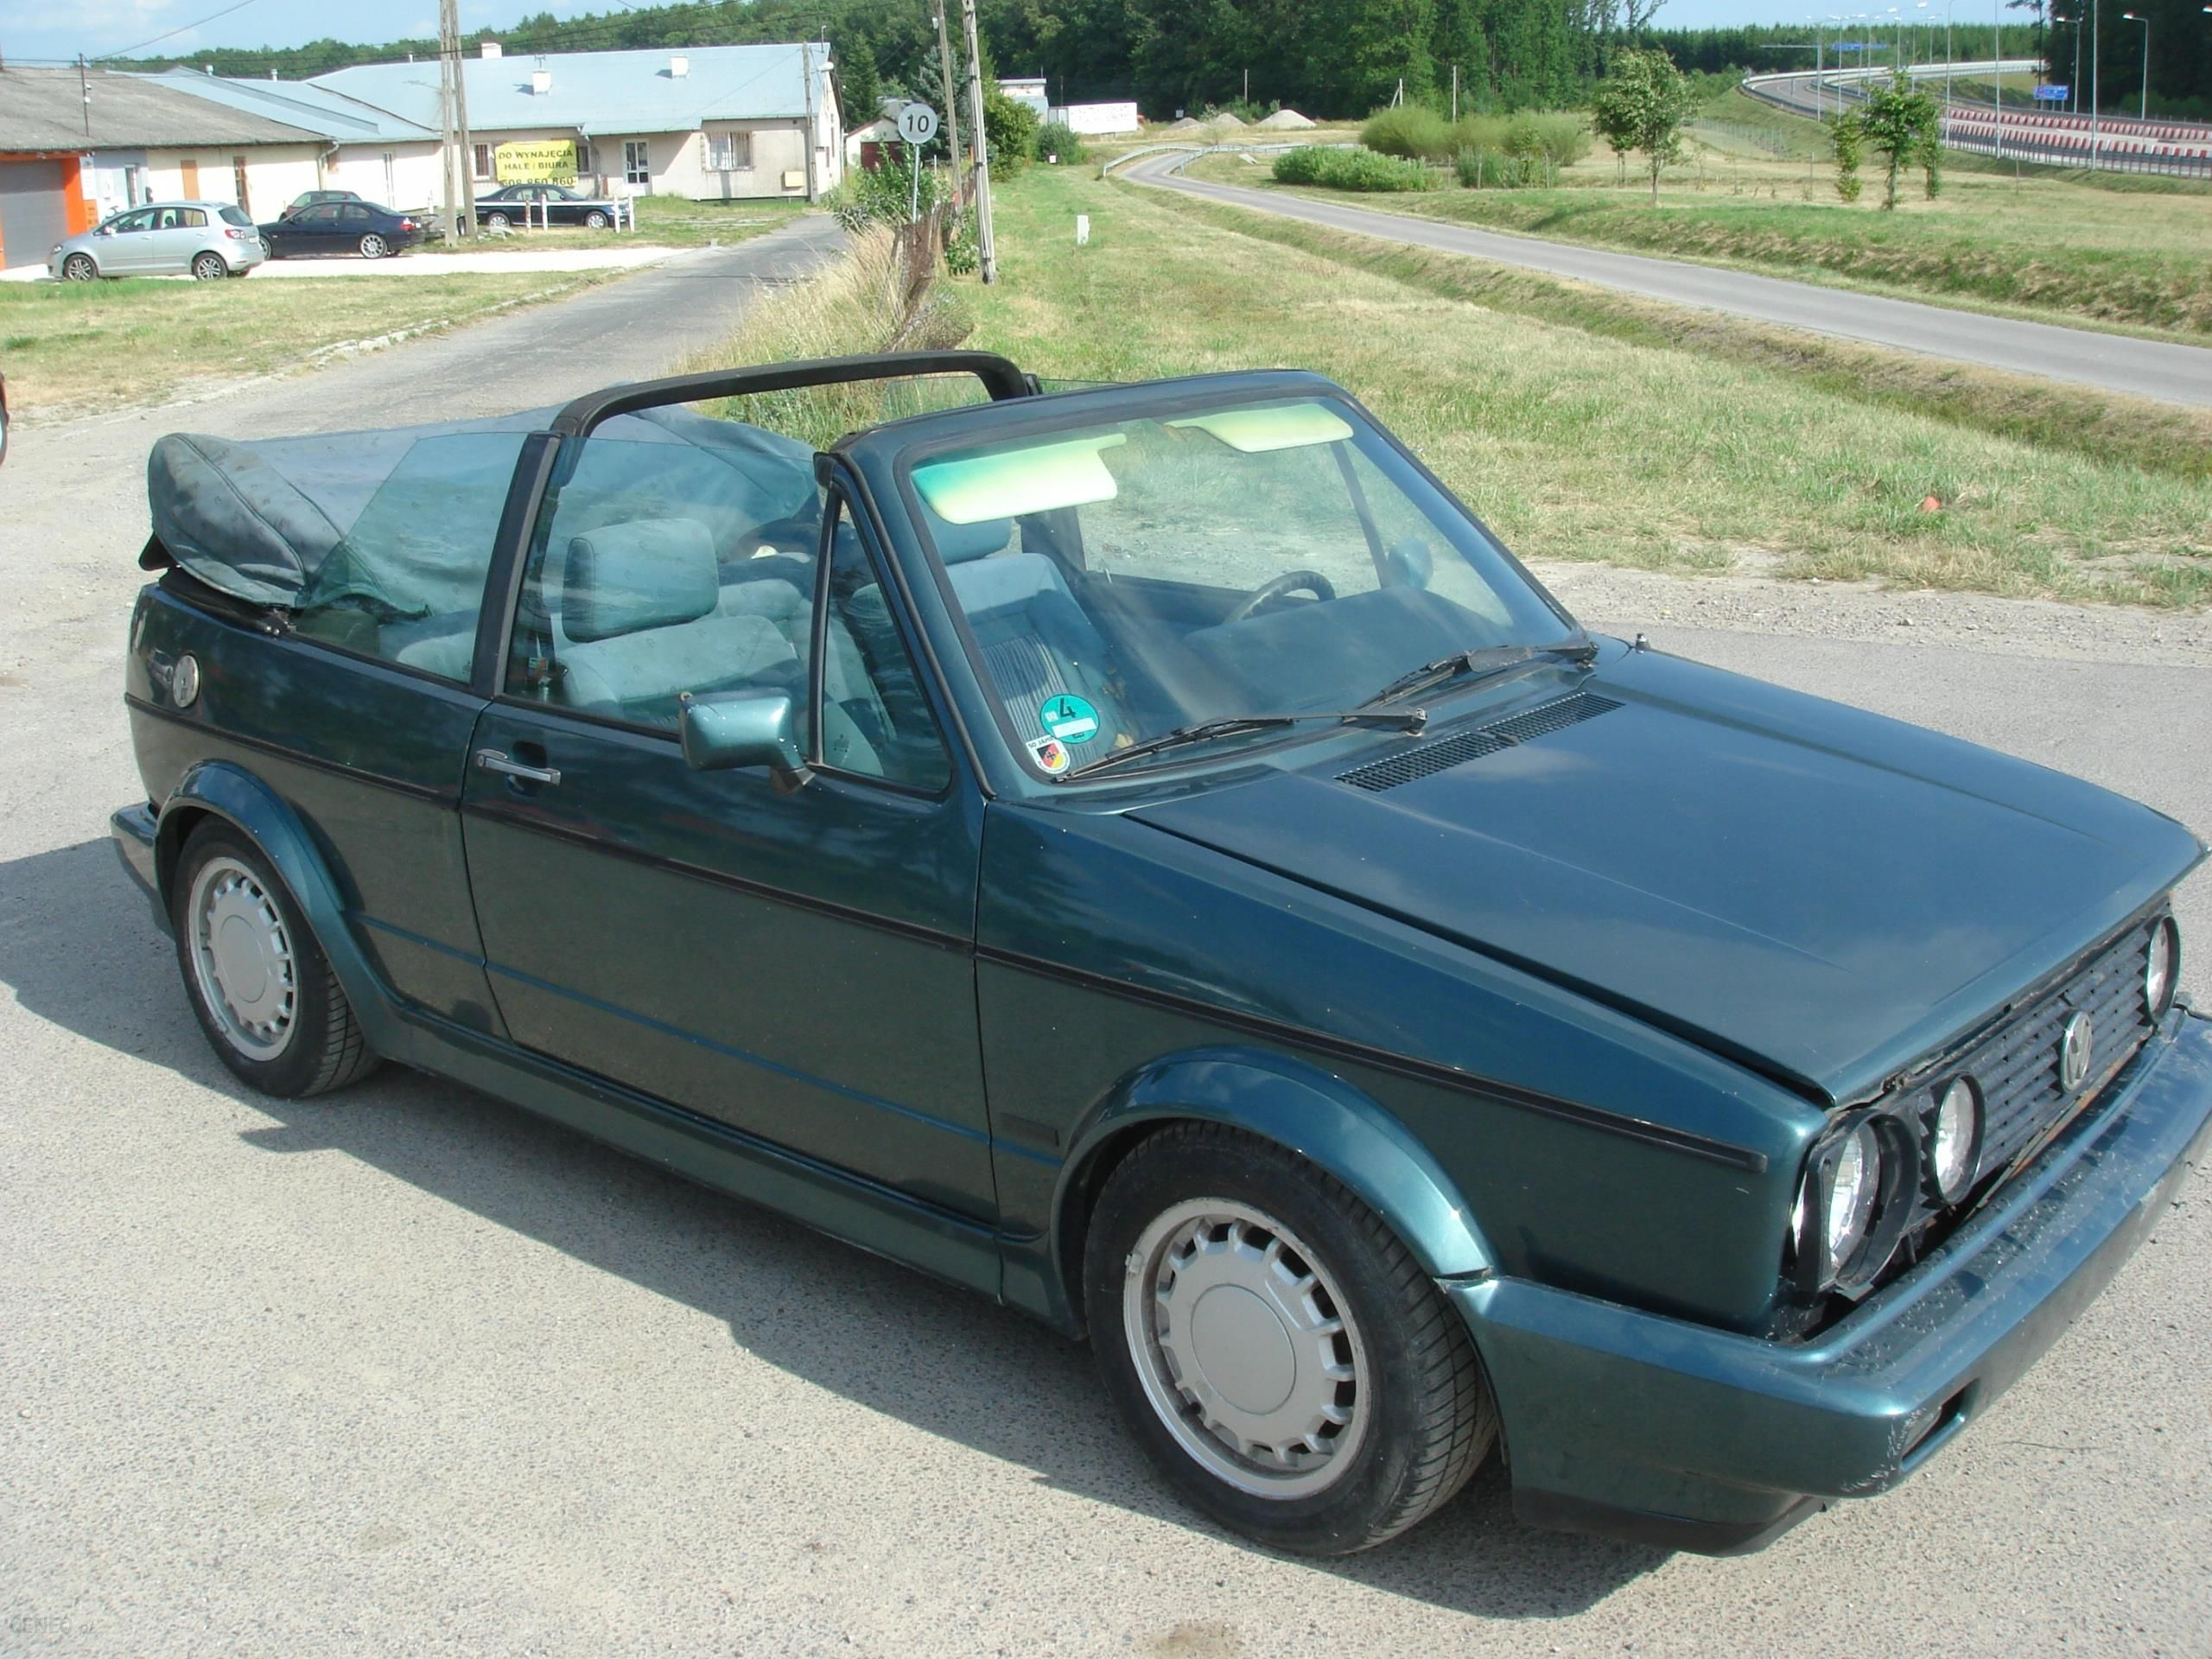 special for shoe another chance detailed look VW GOLF 1MK1 CABRIO UNIKAT ETIENNE AIGNER - Opinie i ceny na Ceneo.pl